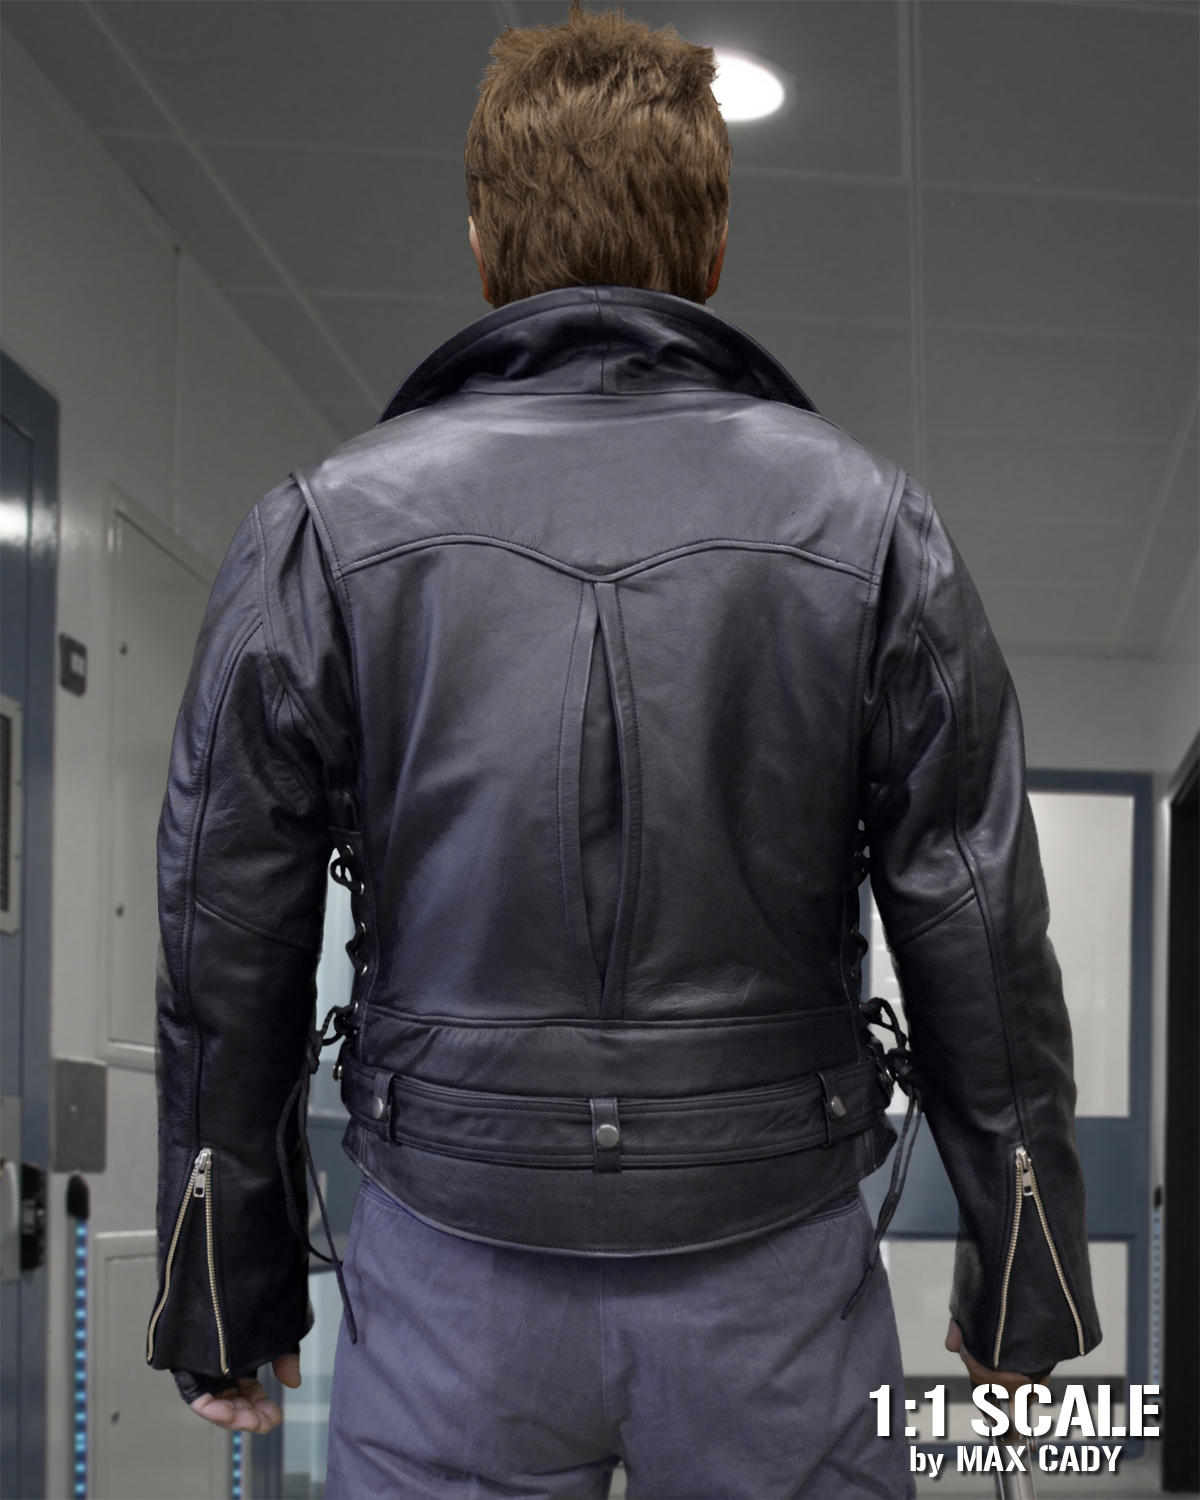 Terminator Leather Jacket Max Cady